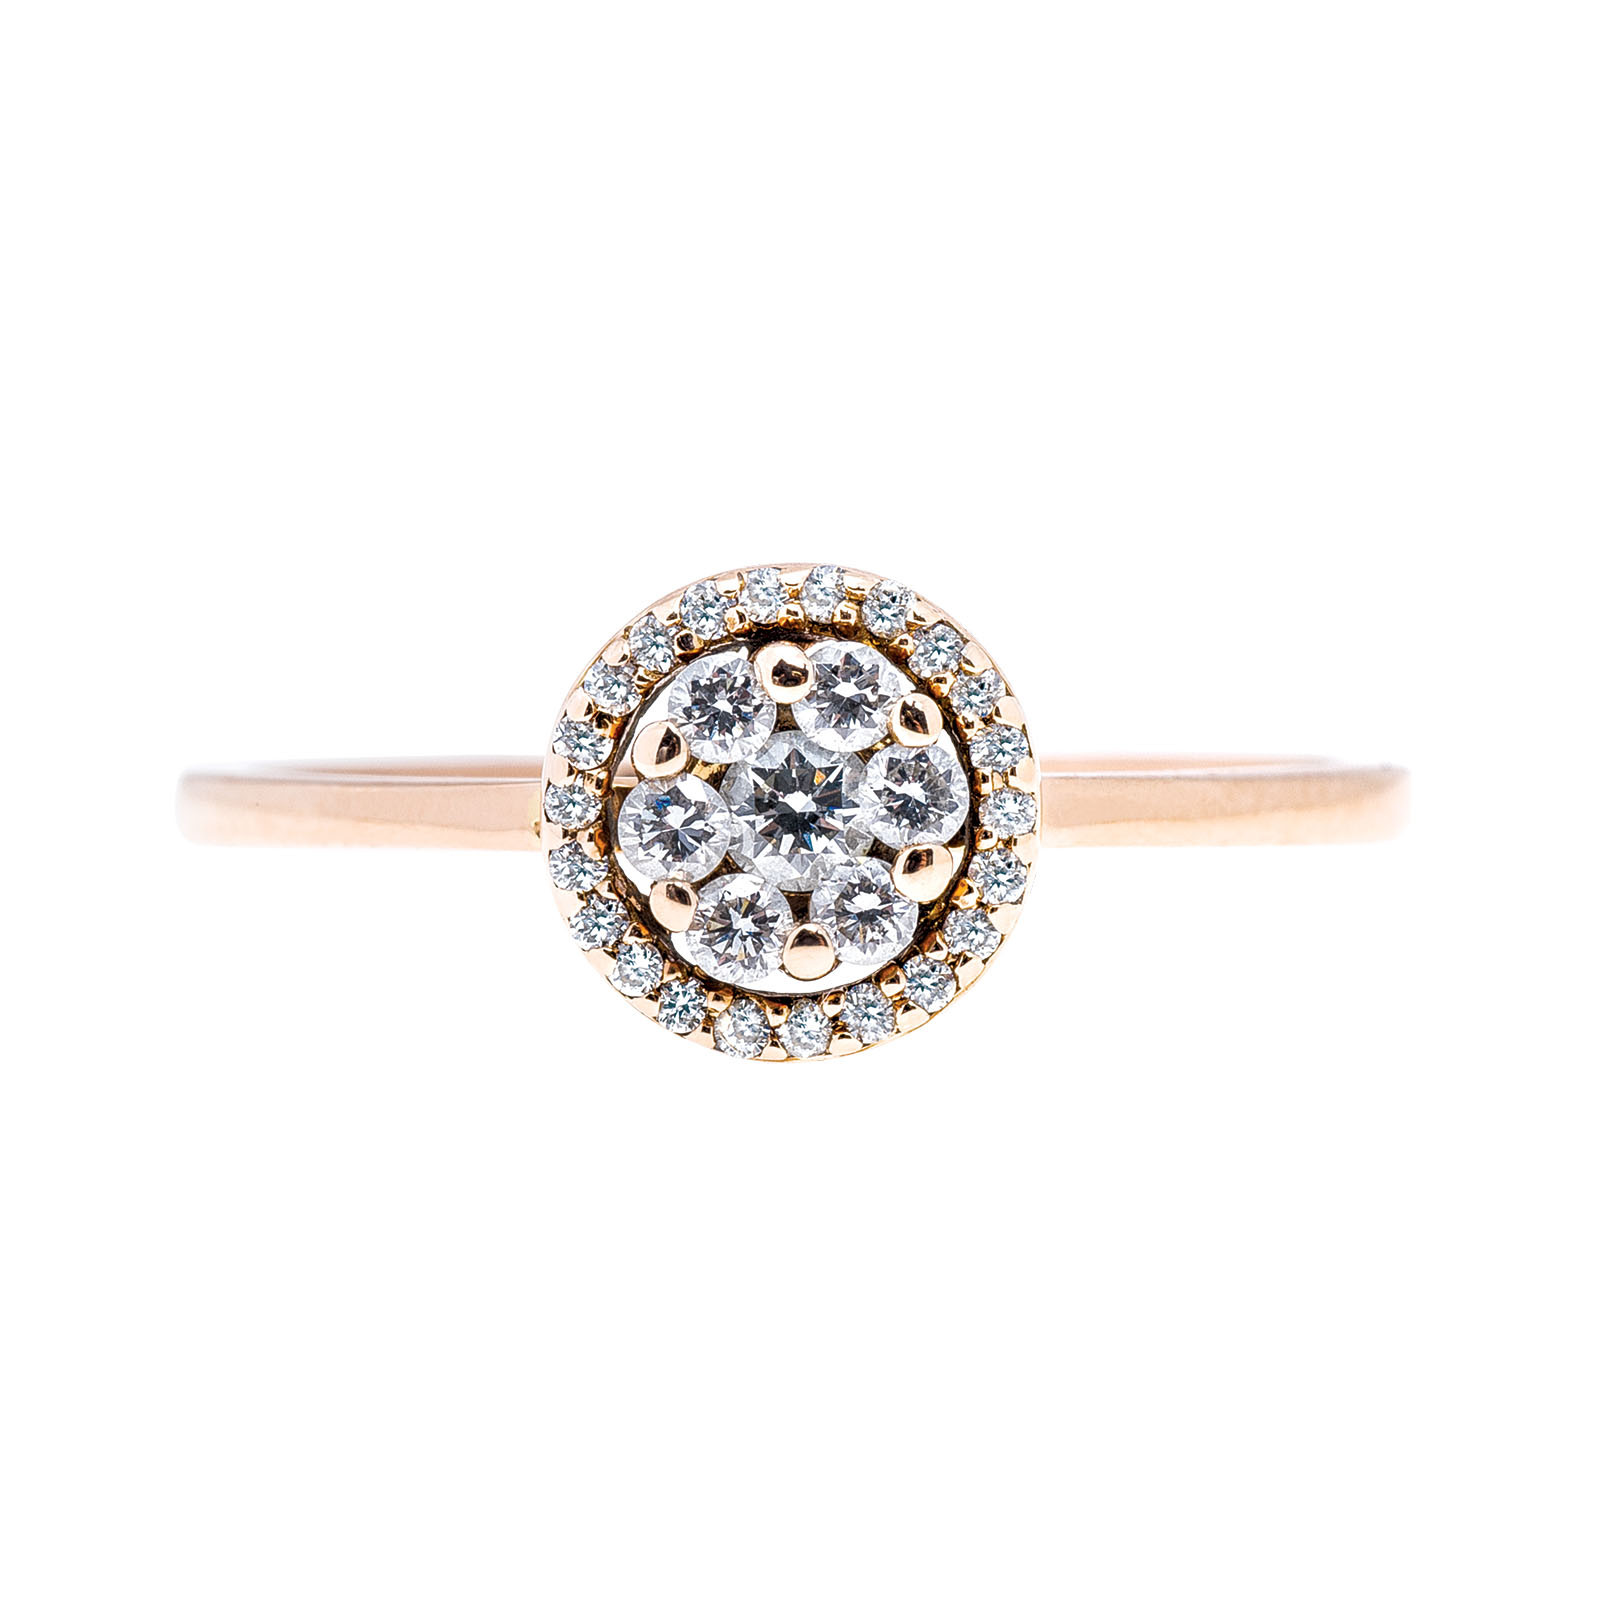 Vintage Carriere by Bony Levy Diamond Flower Ring